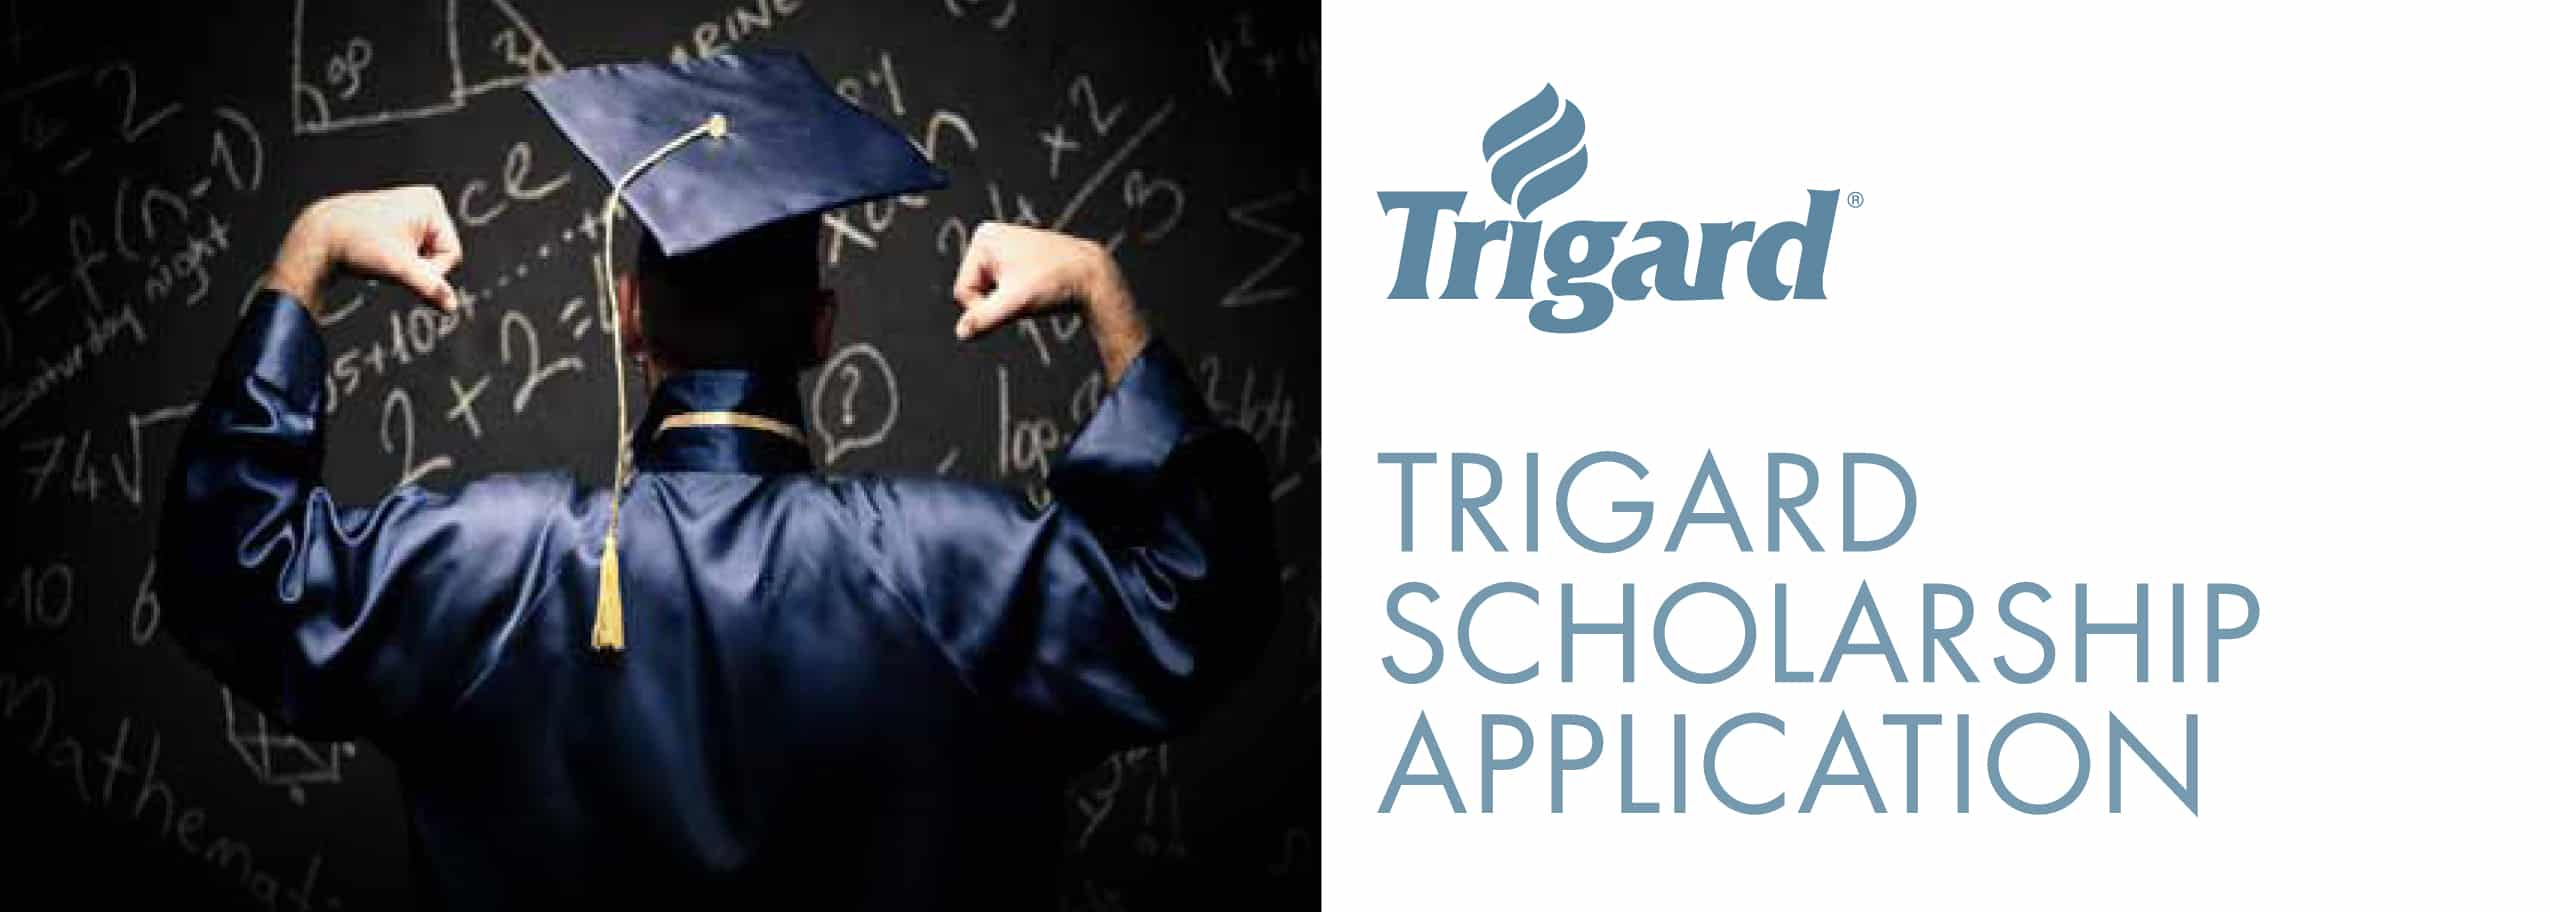 Trigard Scholarship Application Trigard